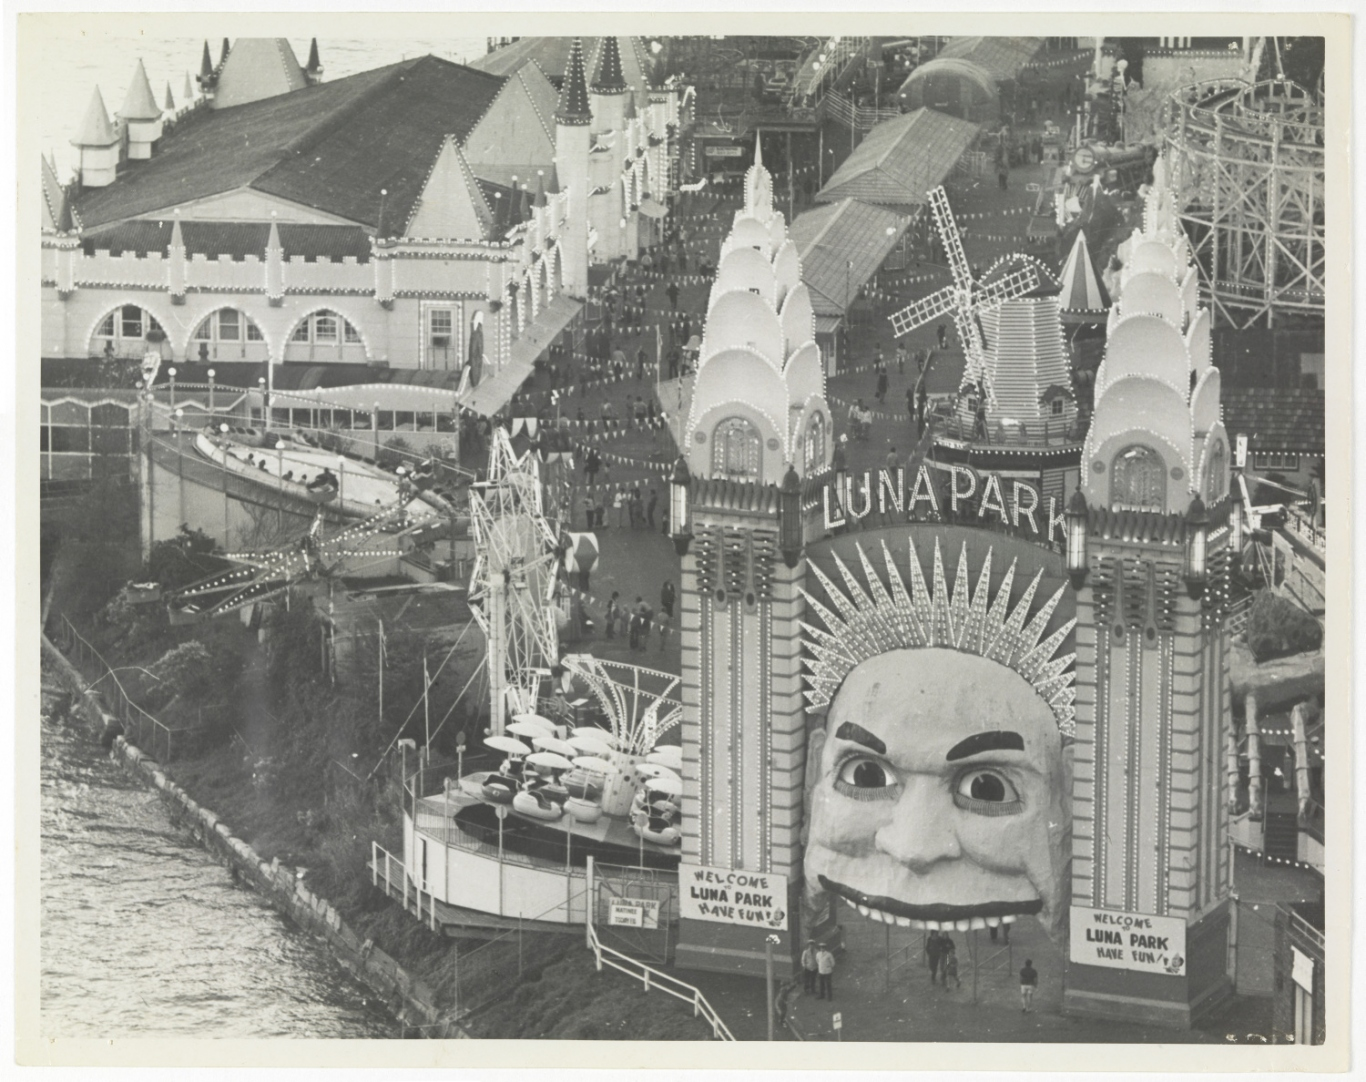 Elevated view of Luna Park, c.1950.